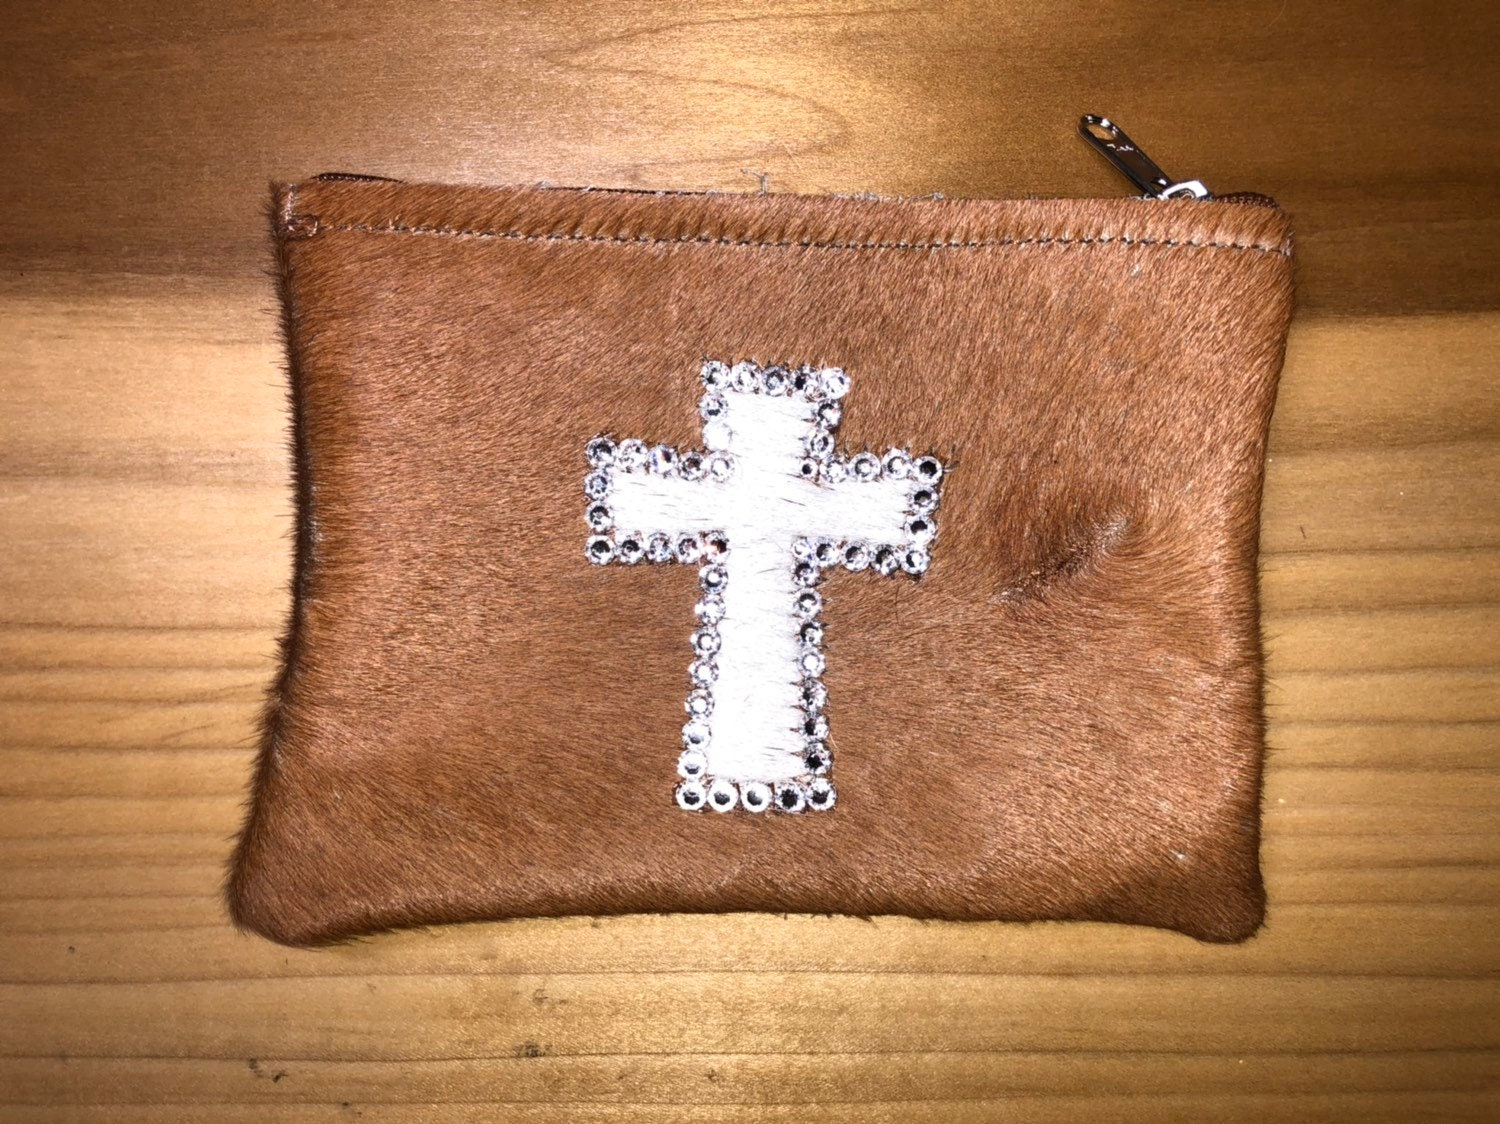 336b31425 Fur Cross Cosmetic Bag with Swarovski Crystals - Gifts Under 30 ...